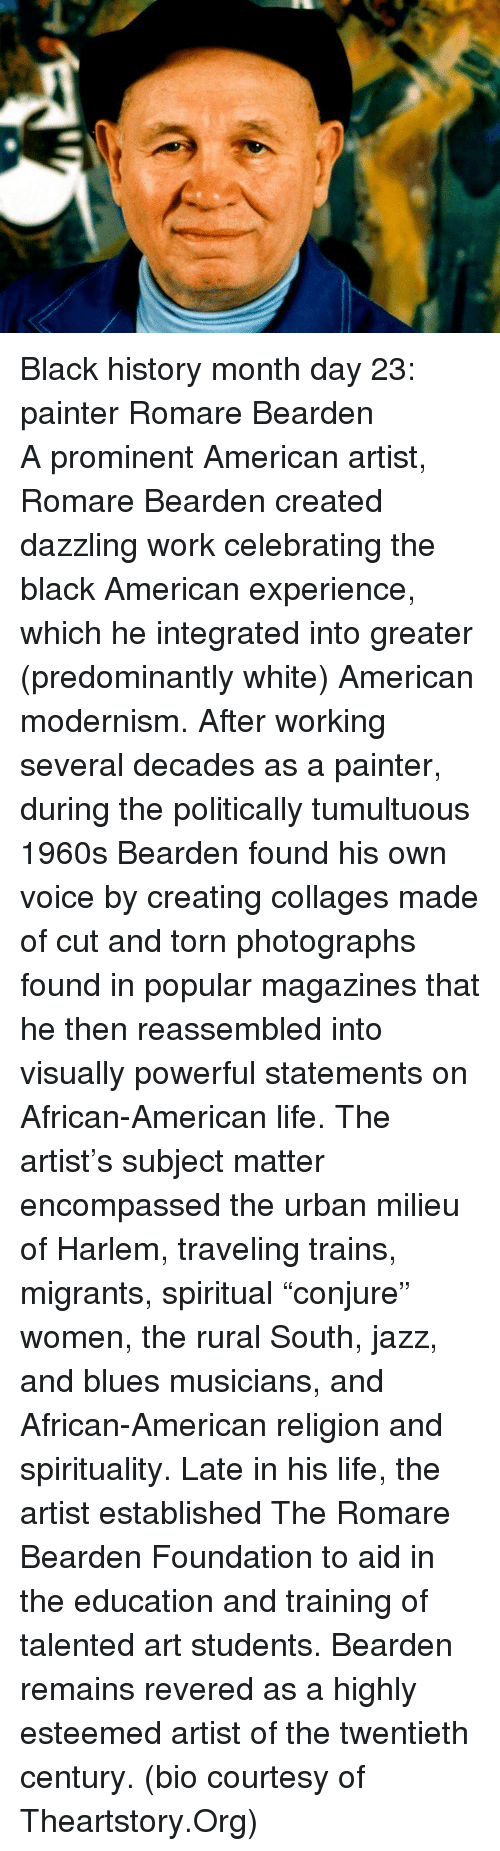 Black History Month, Life, and Work: <p>Black history month day 23: painter Romare Bearden</p>  <p>A prominent American artist, Romare Bearden created dazzling work celebrating the black American experience, which he integrated into greater (predominantly white) American modernism. After working several decades as a painter, during the politically tumultuous 1960s Bearden found his own voice by creating collages made of cut and torn photographs found in popular magazines that he then reassembled into visually powerful statements on African-American life. The artist&rsquo;s subject matter encompassed the urban milieu of Harlem, traveling trains, migrants, spiritual &ldquo;conjure&rdquo; women, the rural South, jazz, and blues musicians, and African-American religion and spirituality. Late in his life, the artist established The Romare Bearden Foundation to aid in the education and training of talented art students. Bearden remains revered as a highly esteemed artist of the twentieth century. (bio courtesy of Theartstory.Org)</p>